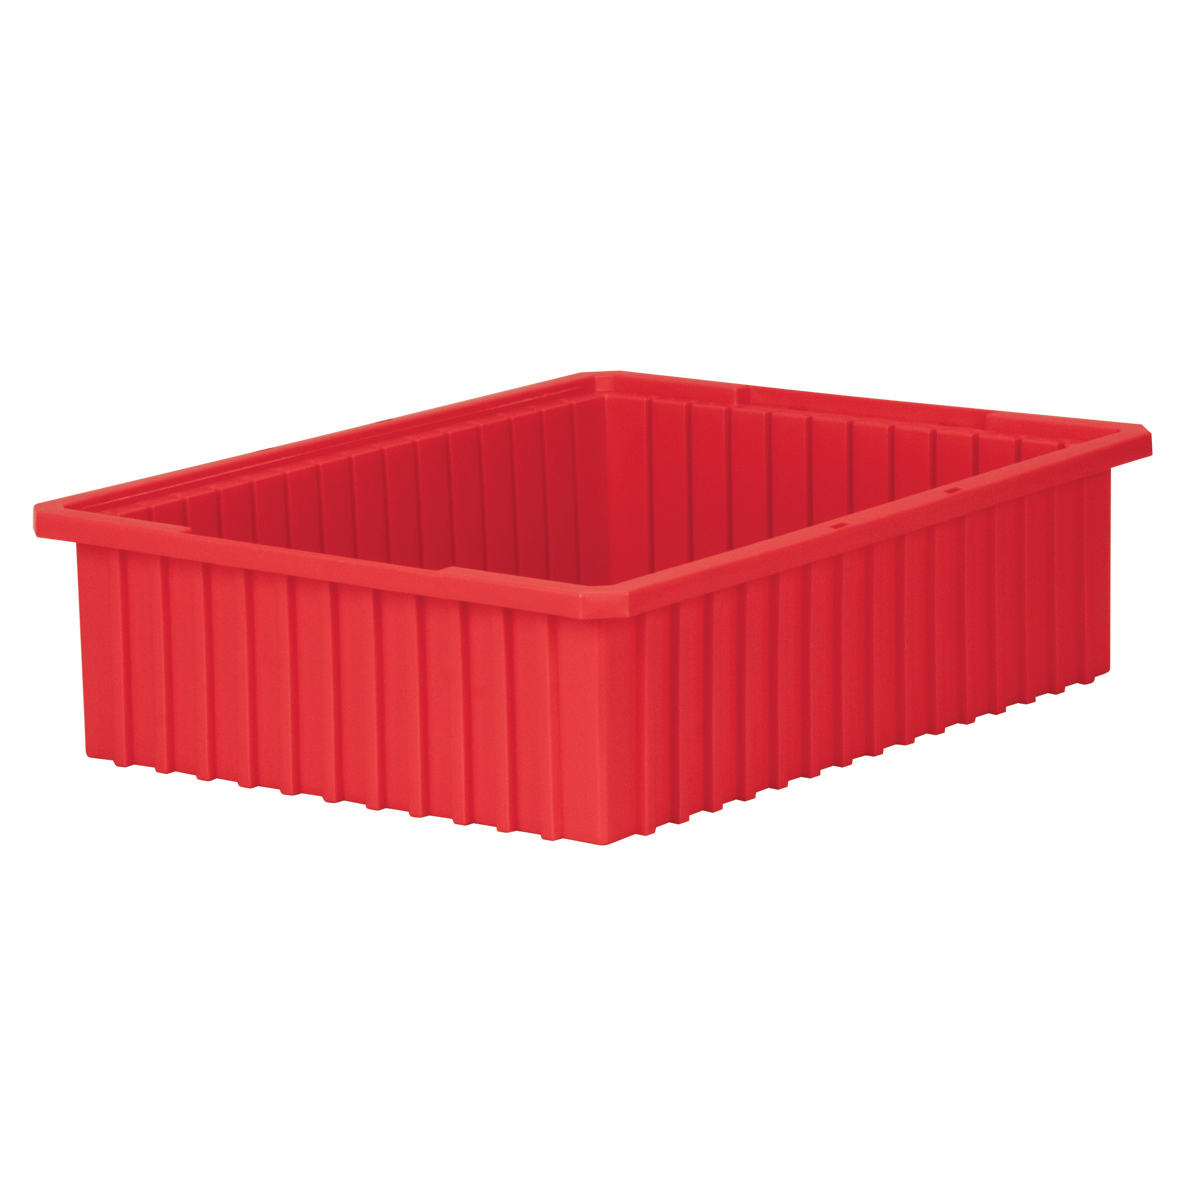 Akro-Grid Dividable Box 22-3/8 x 17-3/8 x 6, Red (33226RED).  This item sold in carton quantities of 4.